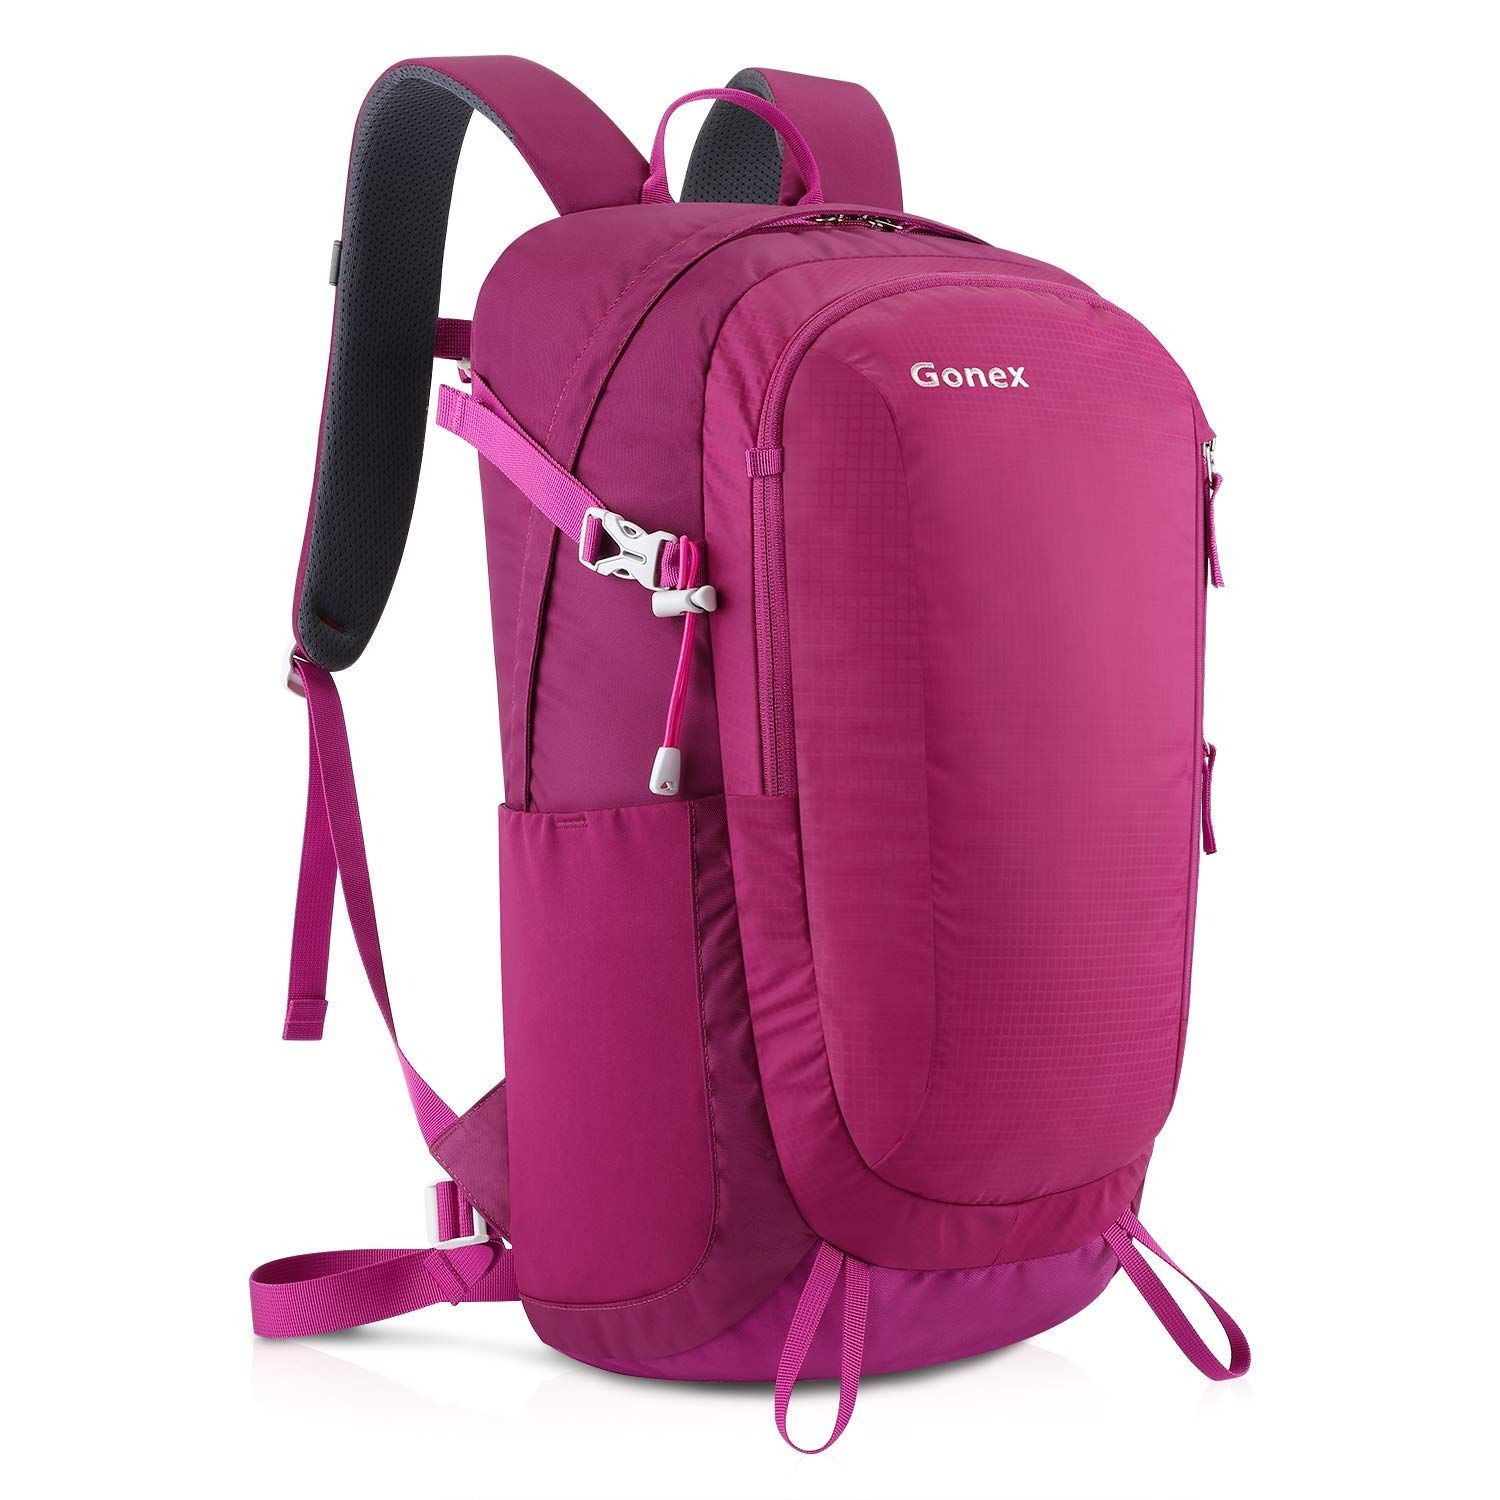 Gonex 30L Small Hiking Backpack, Lightweight Water